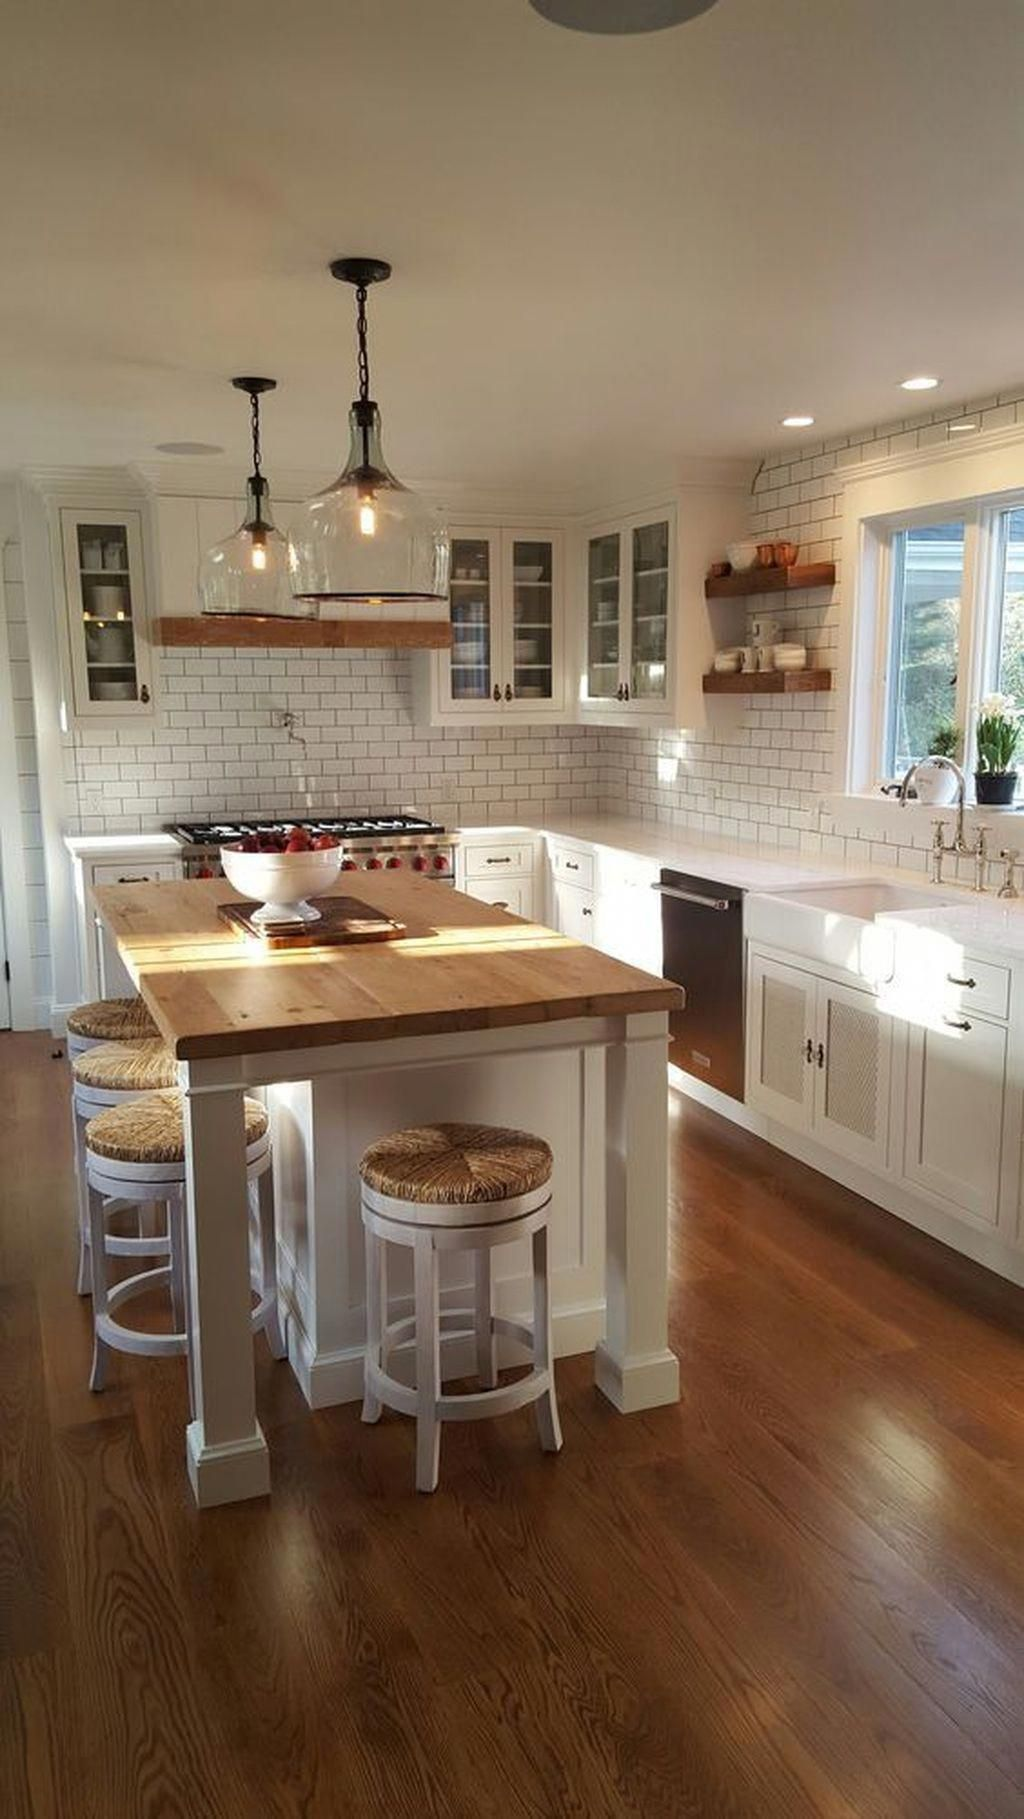 find other ideas kitchen countertops remodeling on a budget small kitchen remodeling layout on kitchen ideas on a budget id=44900